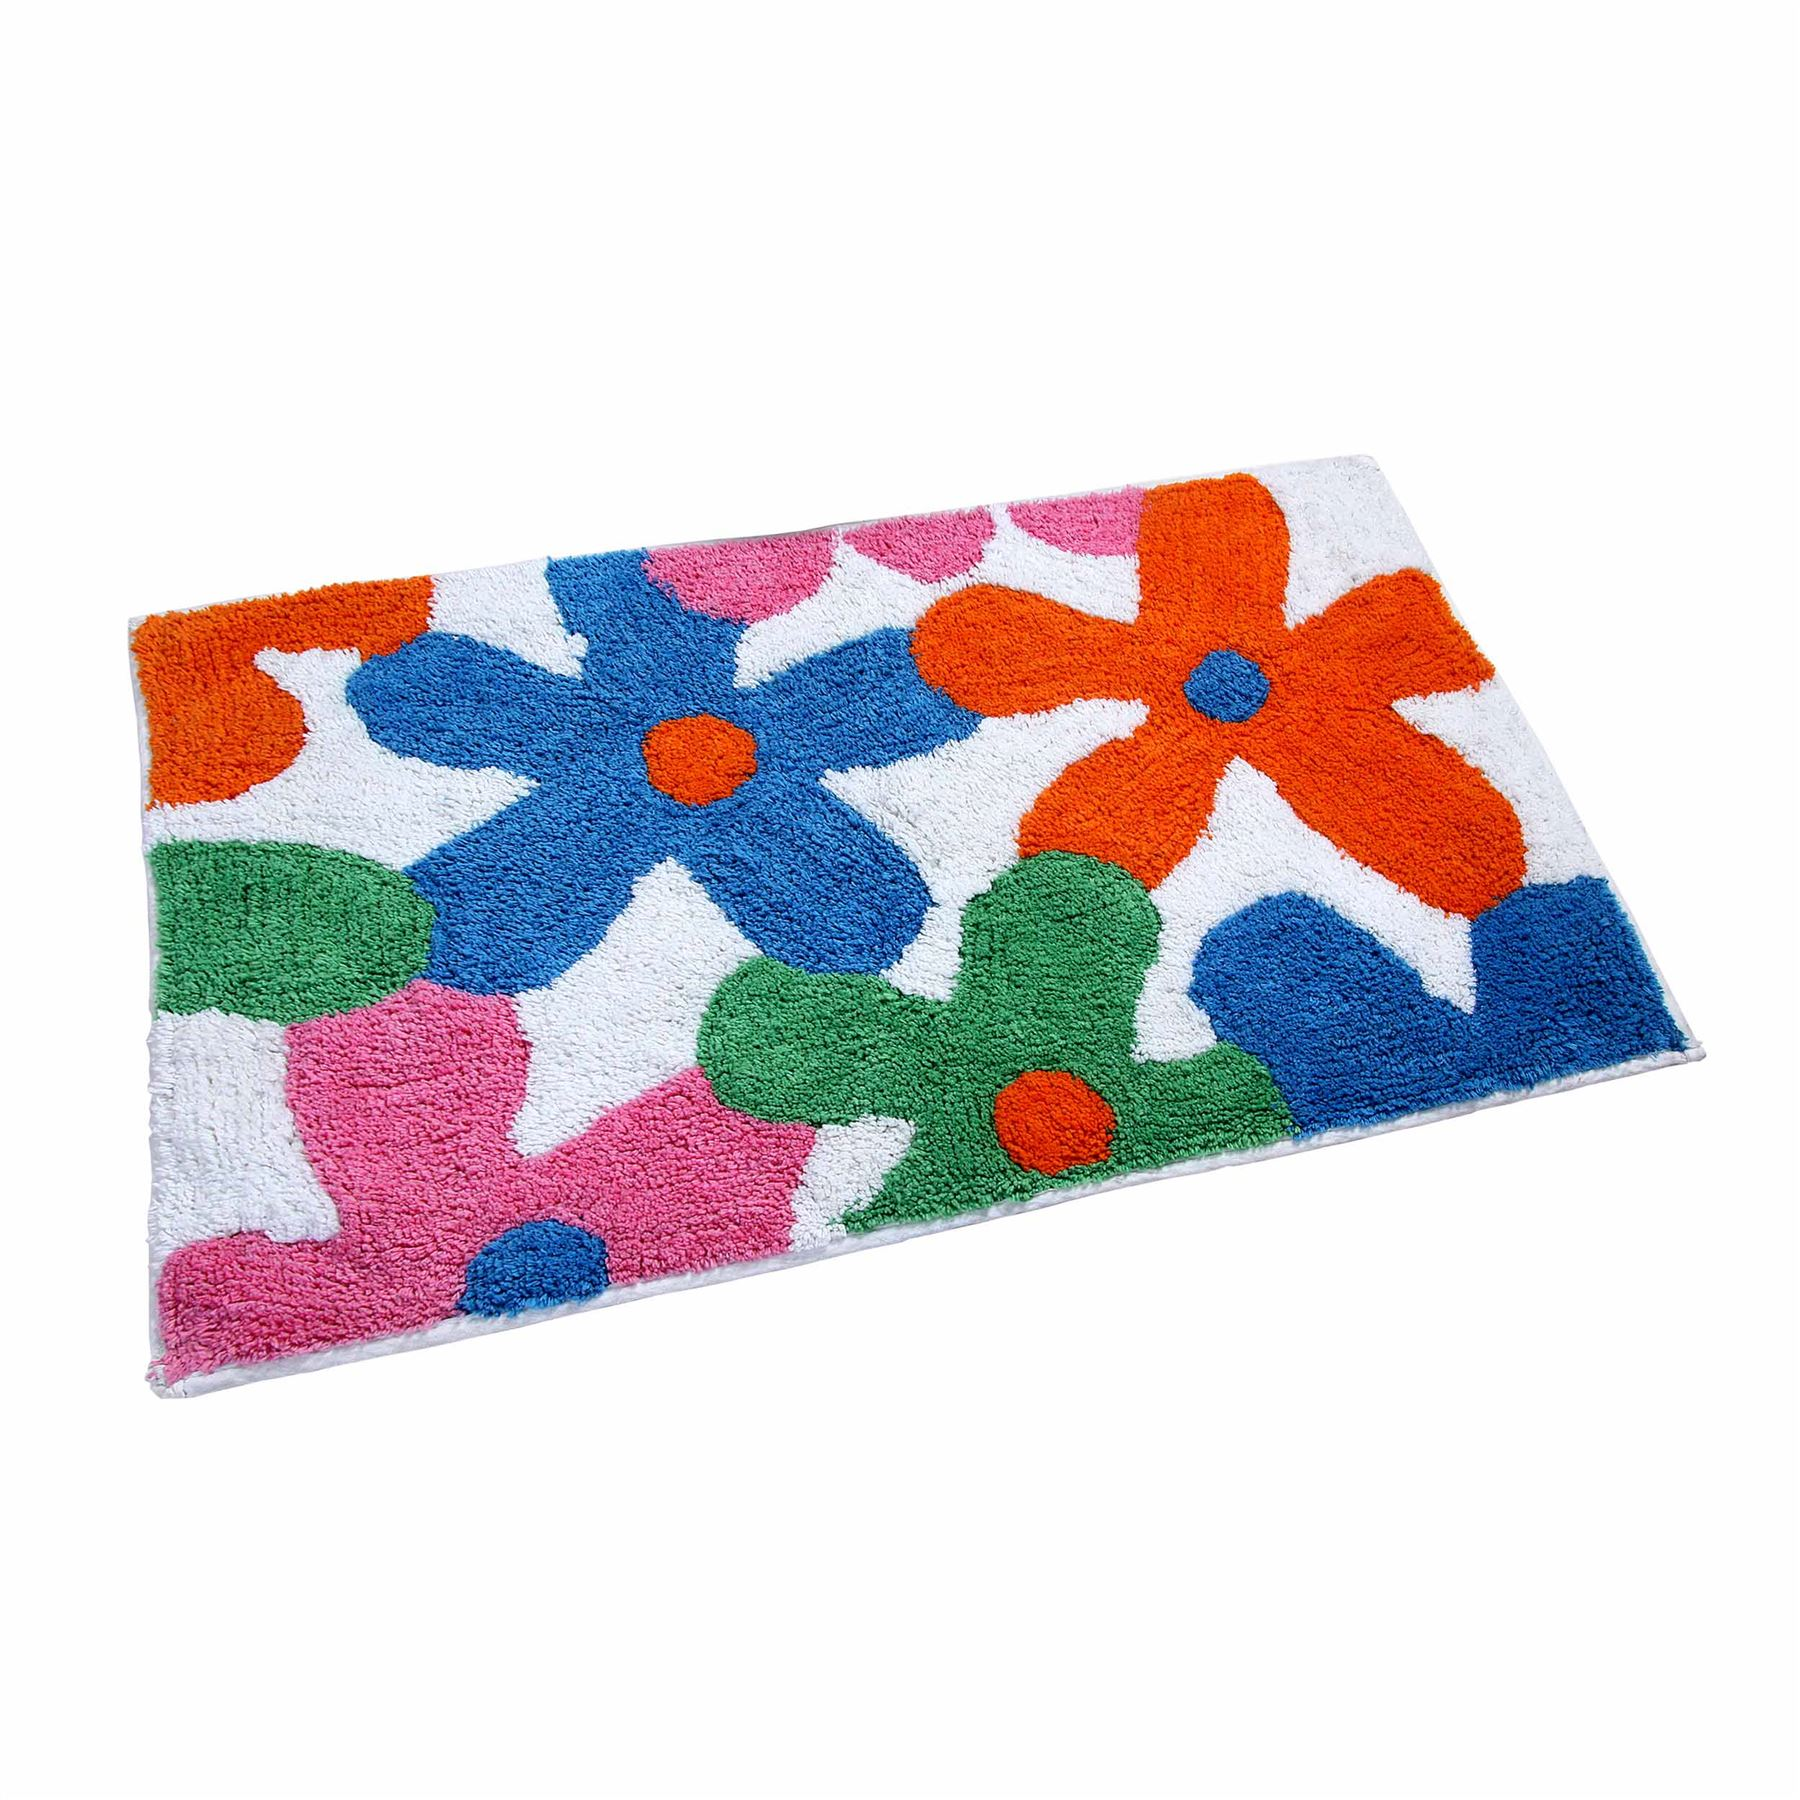 cotton children rugs girls boys bedroom playroom floor mat